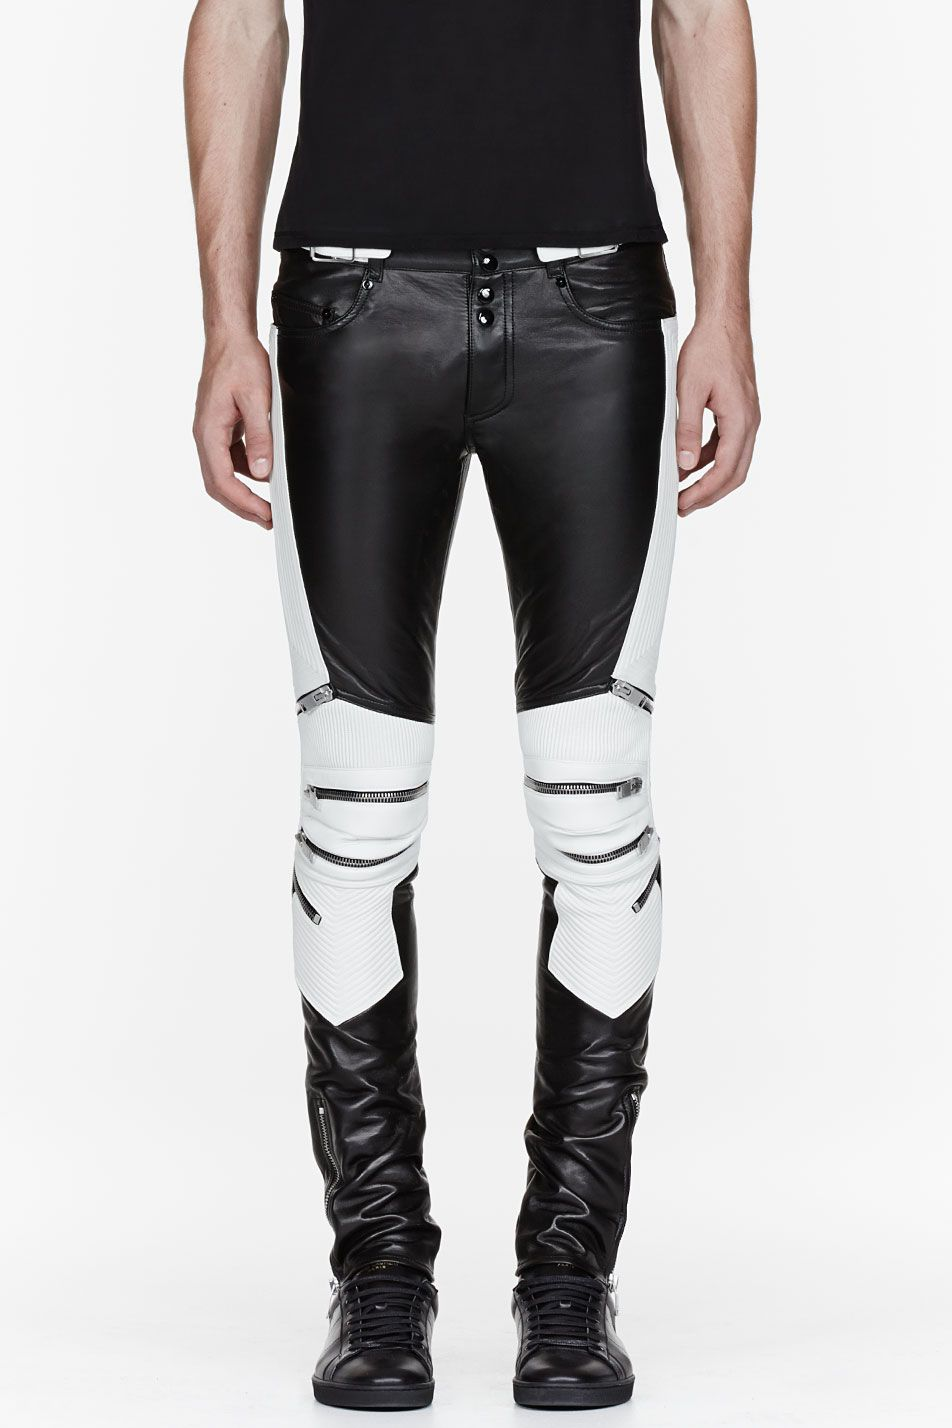 2e807ba8b94ab7 SAINT LAURENT Black & white ribbed zipped biker pants | Everyday ...